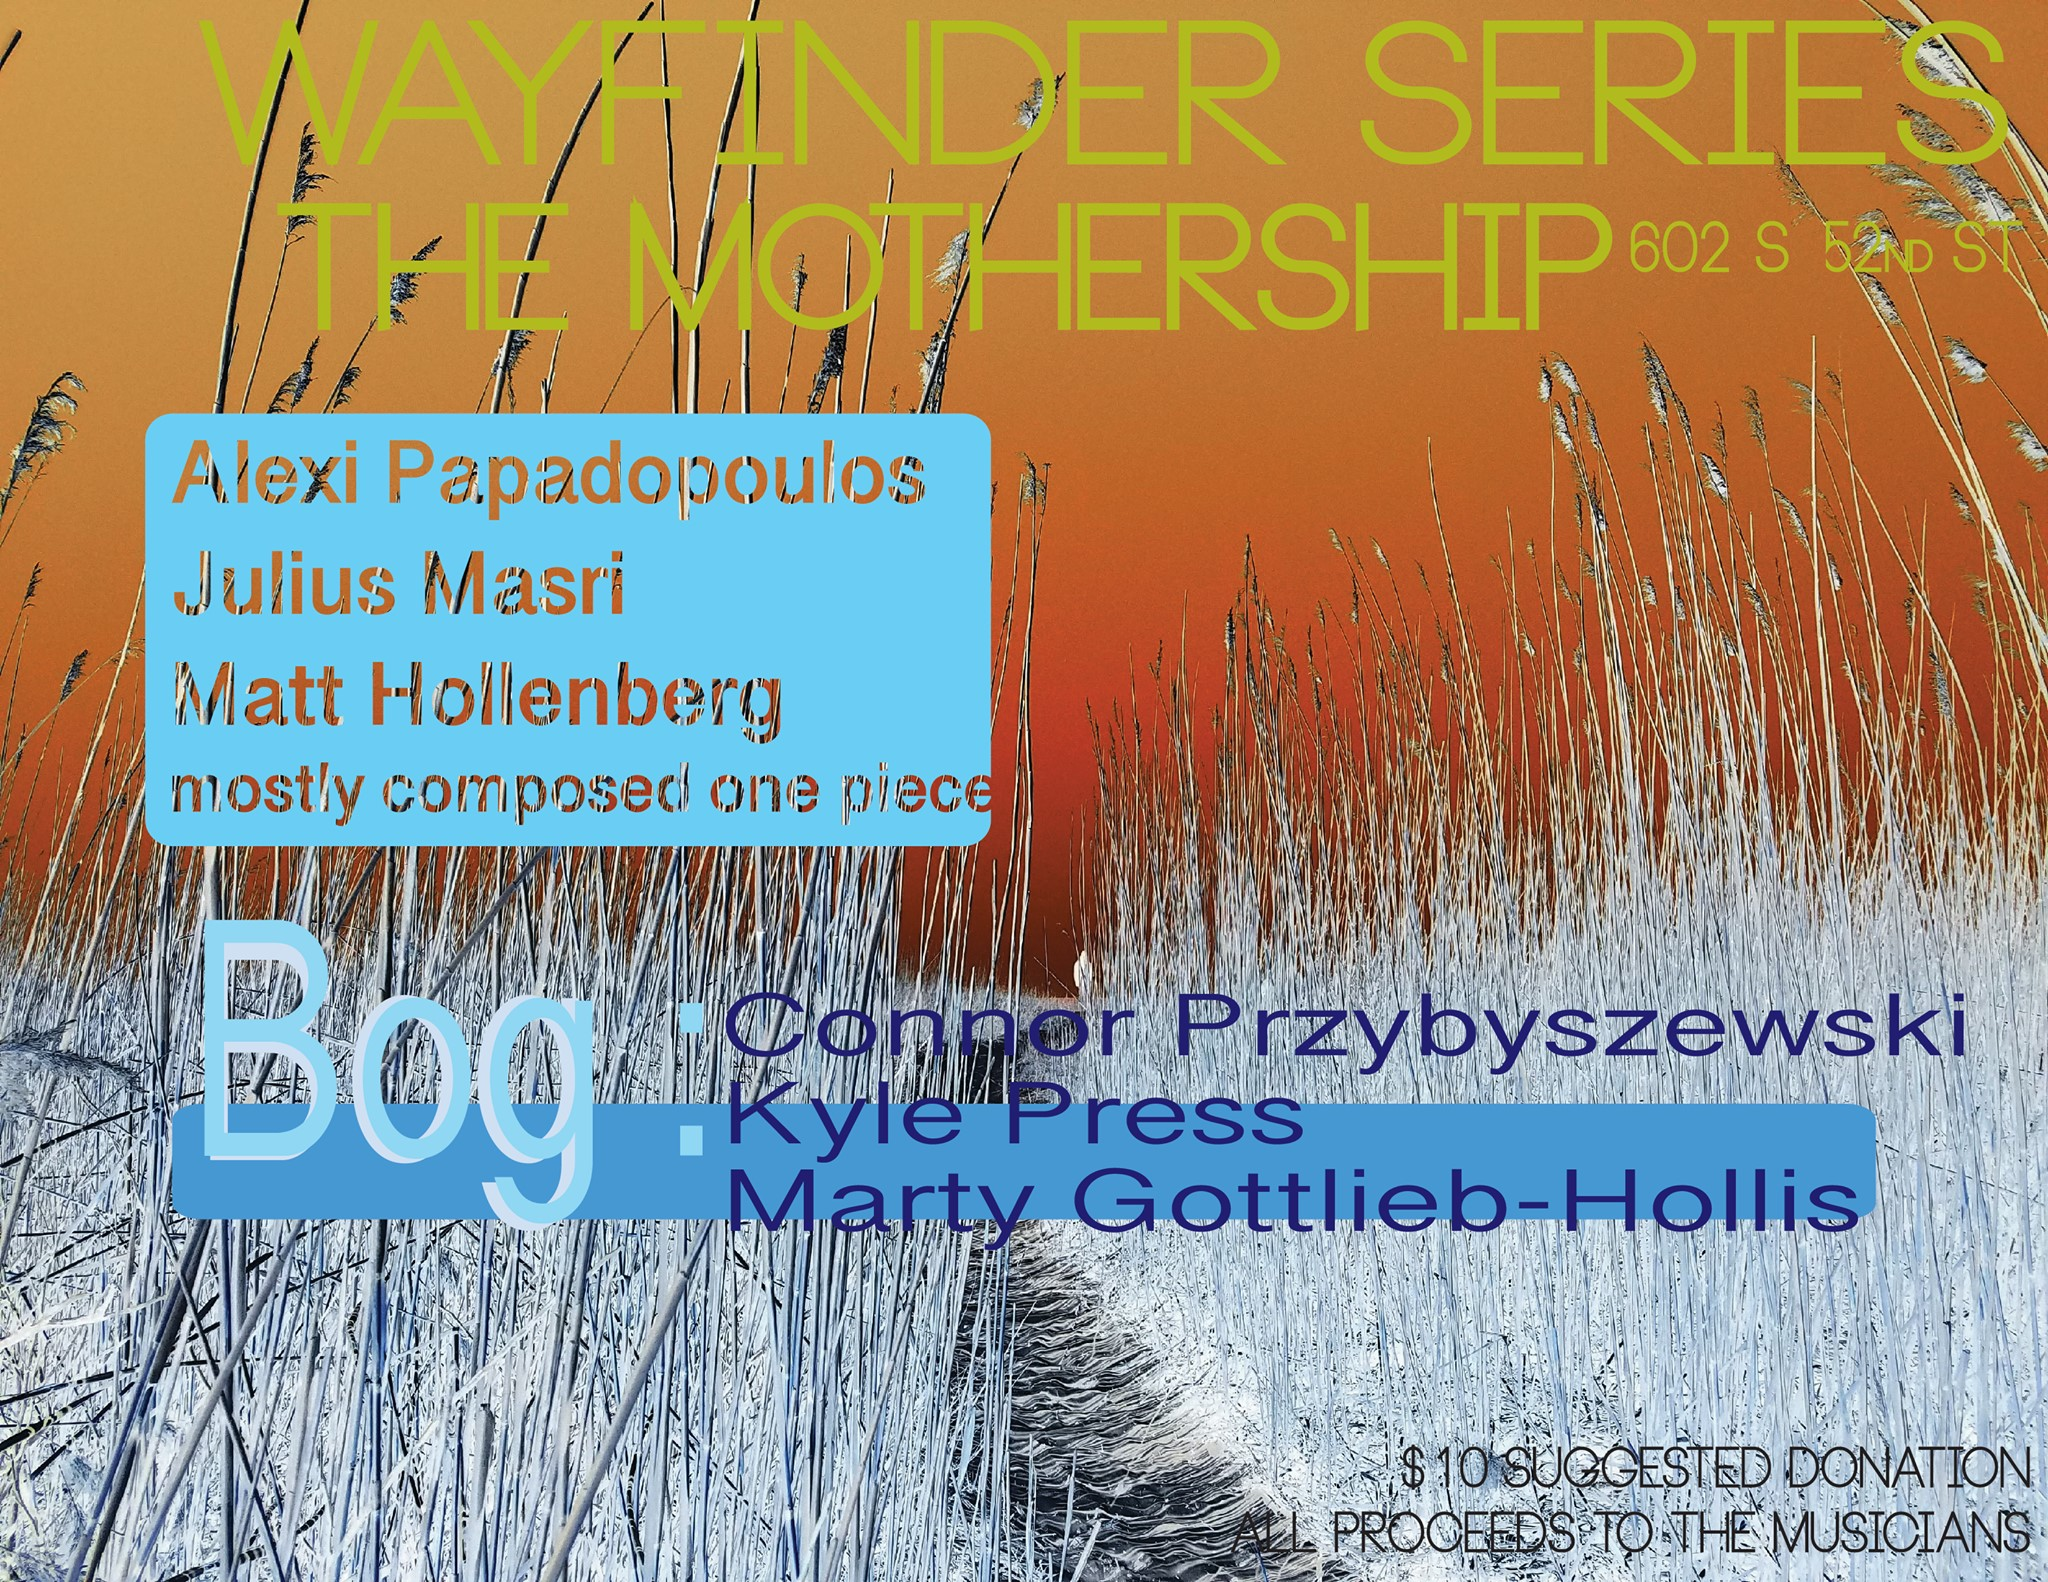 Wayfinder - May edition - May 18th8pmfeaturingAlexi P / Julius M / Matt H+BOGConnor P / Kyle Press / Marty Gottlieb-Hollis